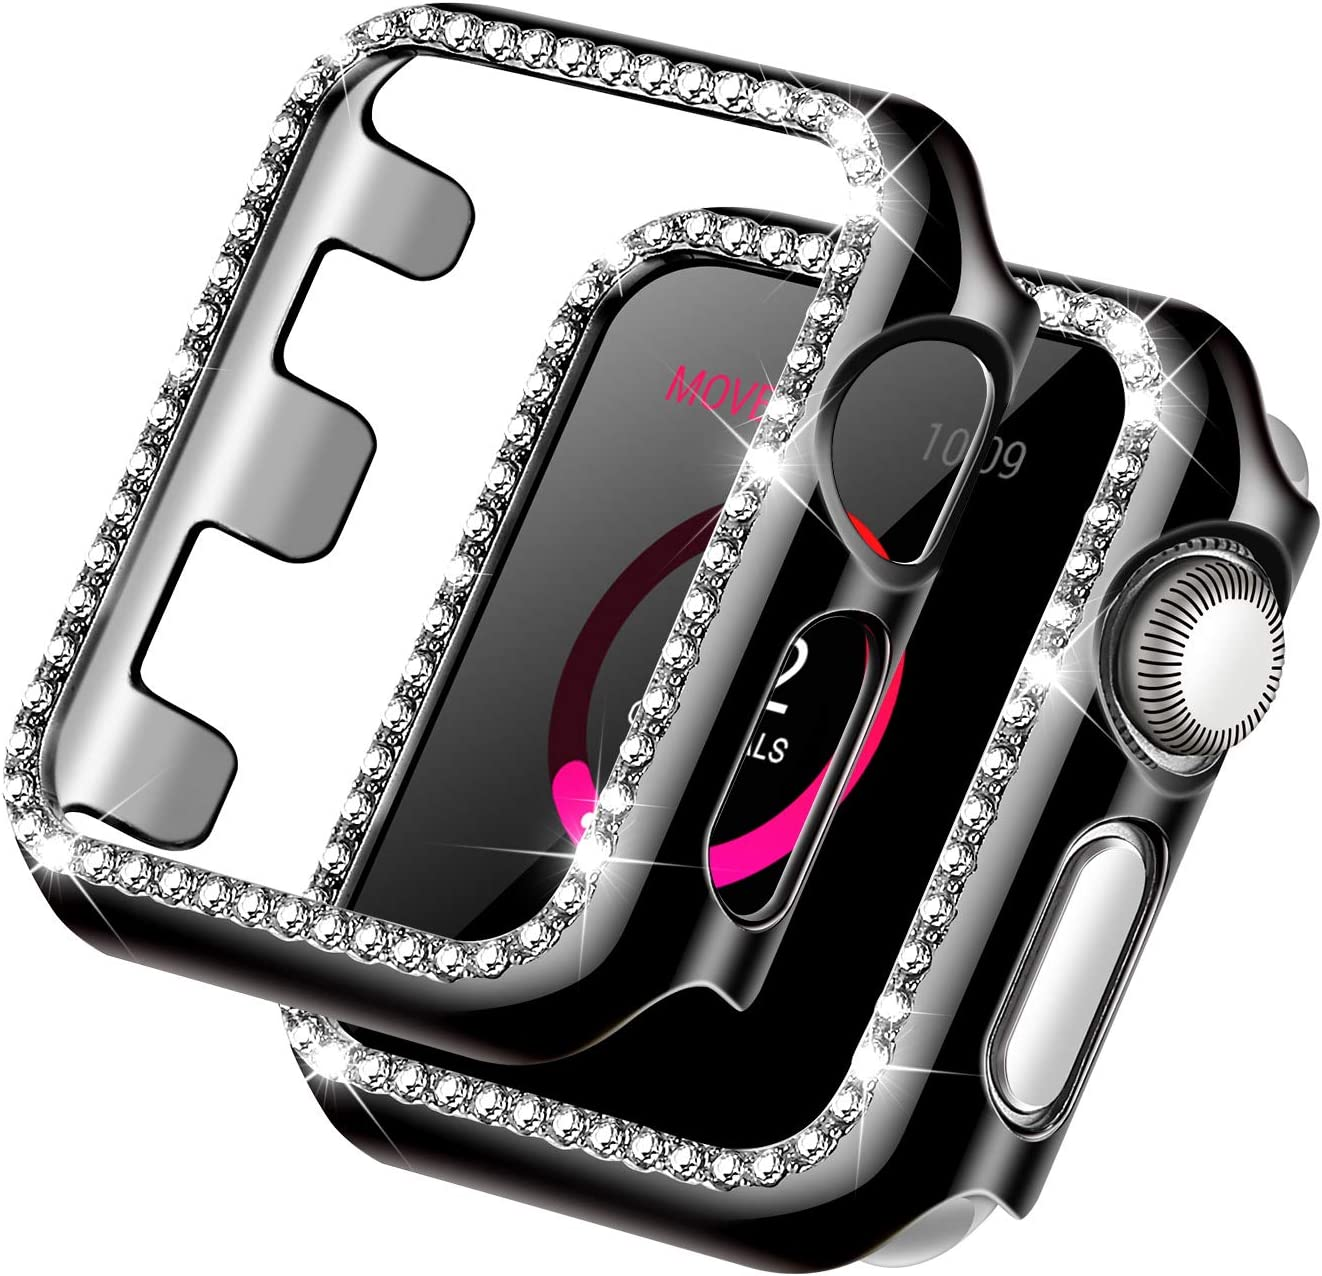 Forbear Compatible with Apple Watch Case 42mm, iWatch Cover with Bling Crystal Diamonds Shiny Rhinestone Bumper, Electroplated PC Protective Frame for Apple Watch Series 3/2/1 (Black, 42mm)